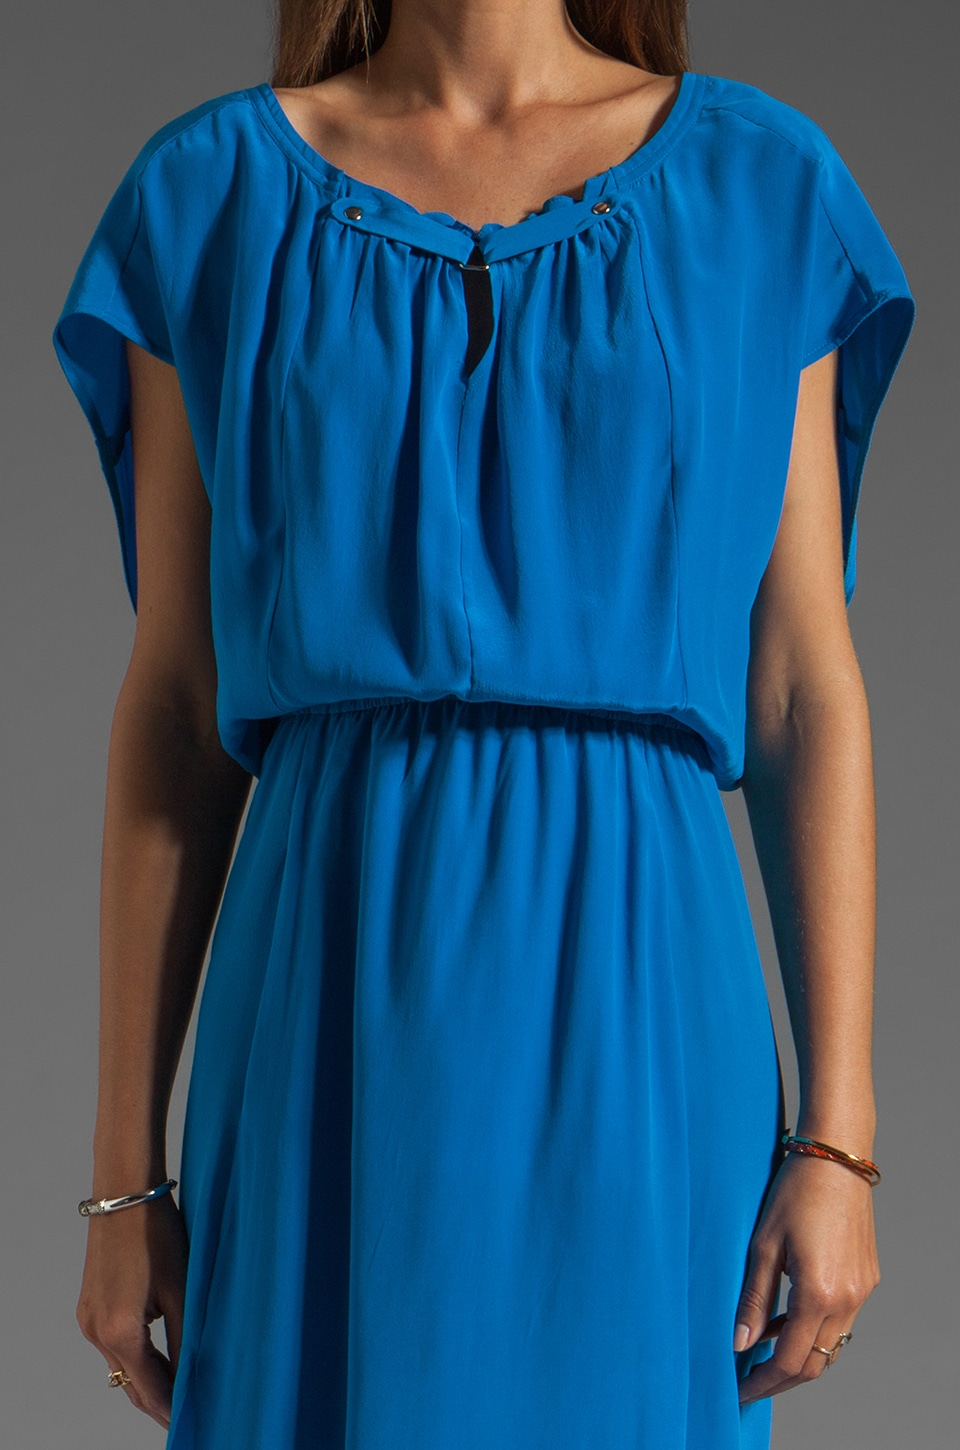 Tracy Reese Cocoon Dress in Aquarian